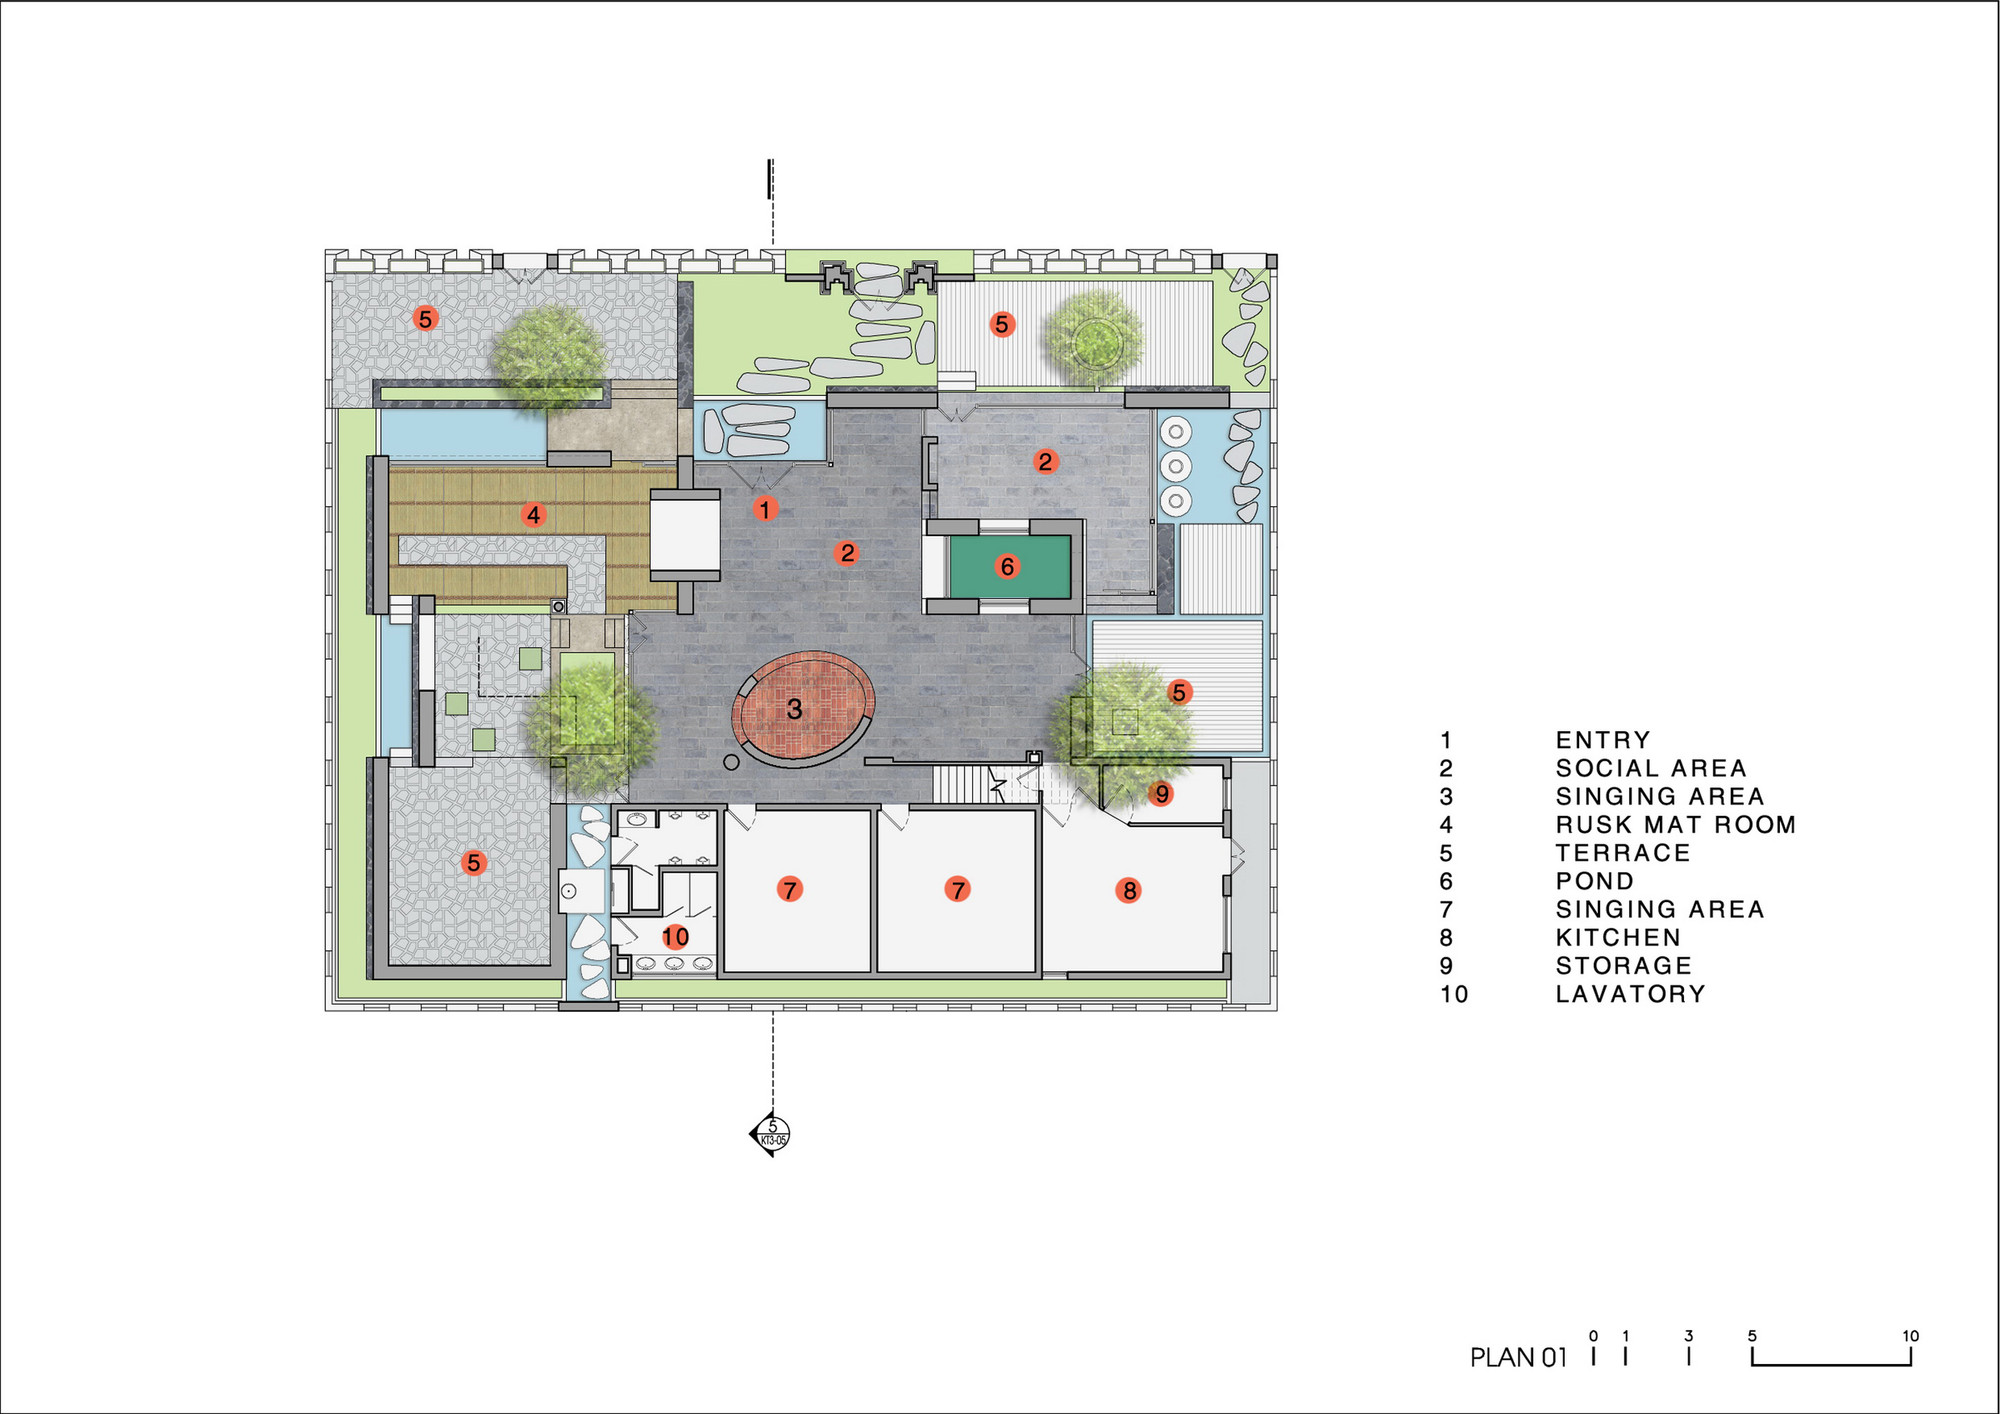 Gallery Of Viet Pavilion Landmak Architecture 27 Wr450f Wiring Diagram Pavilionfirst Floor Plan